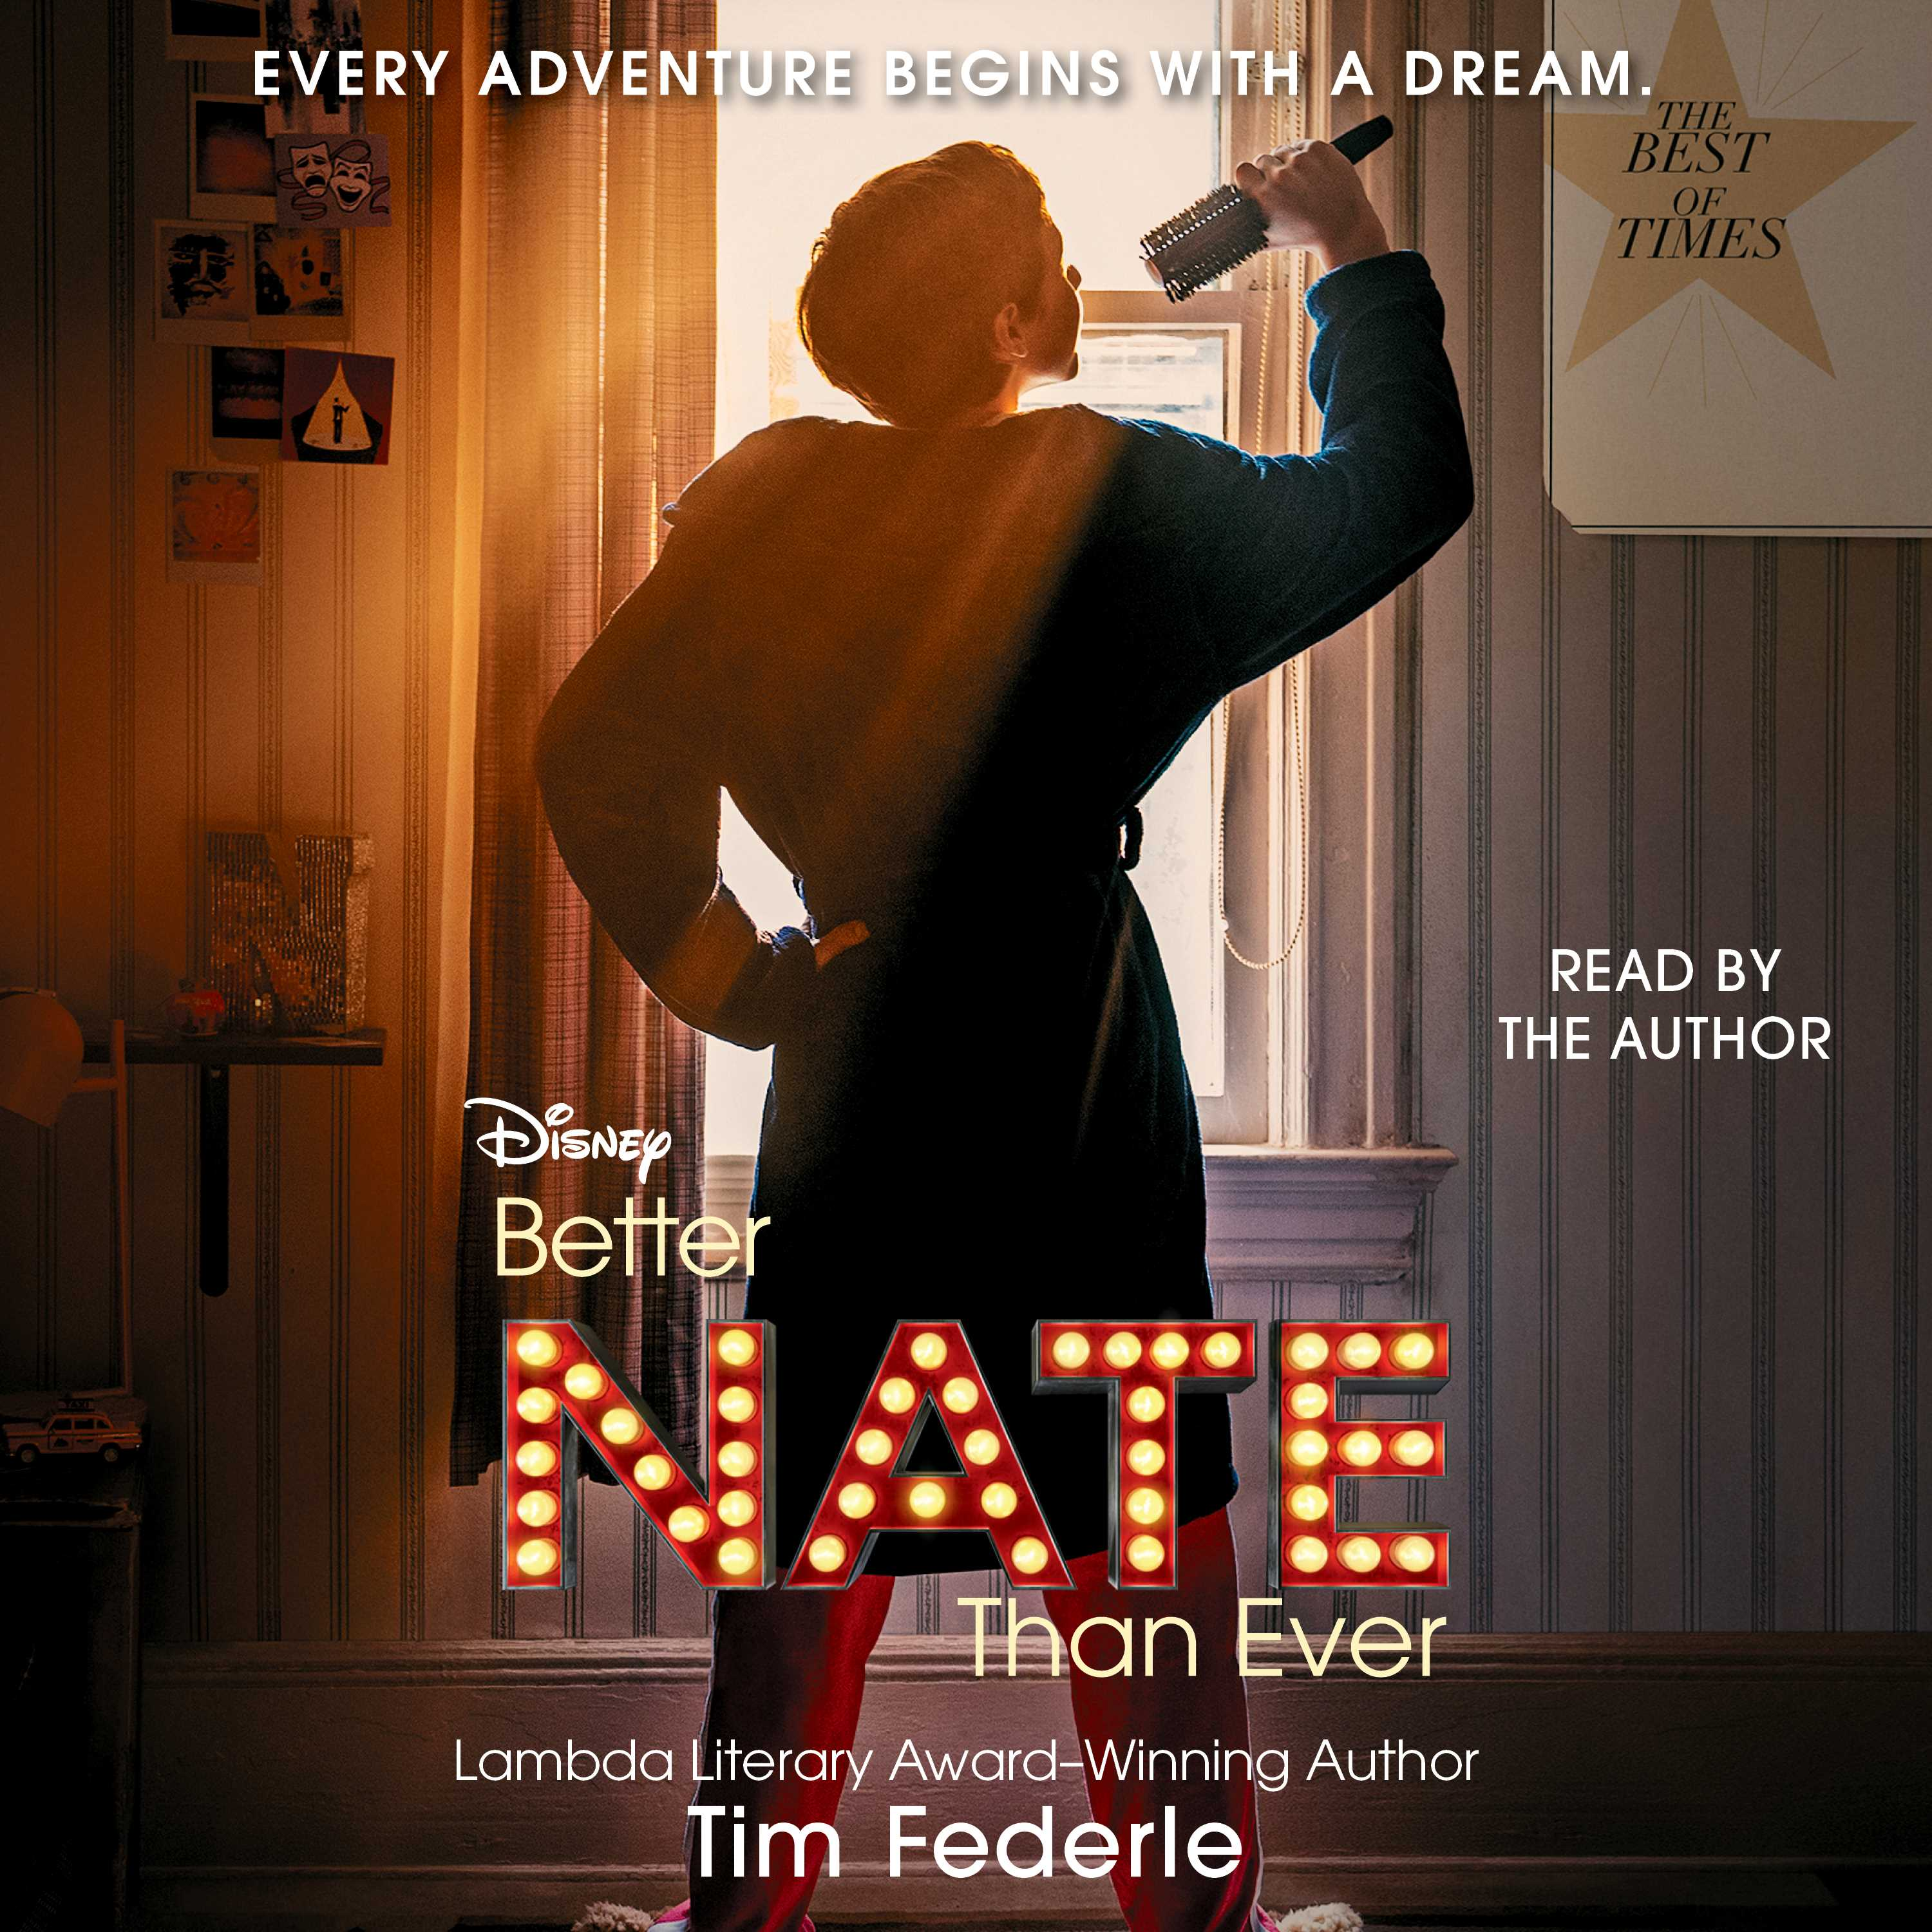 Better-nate-than-ever-9781442366206_hr